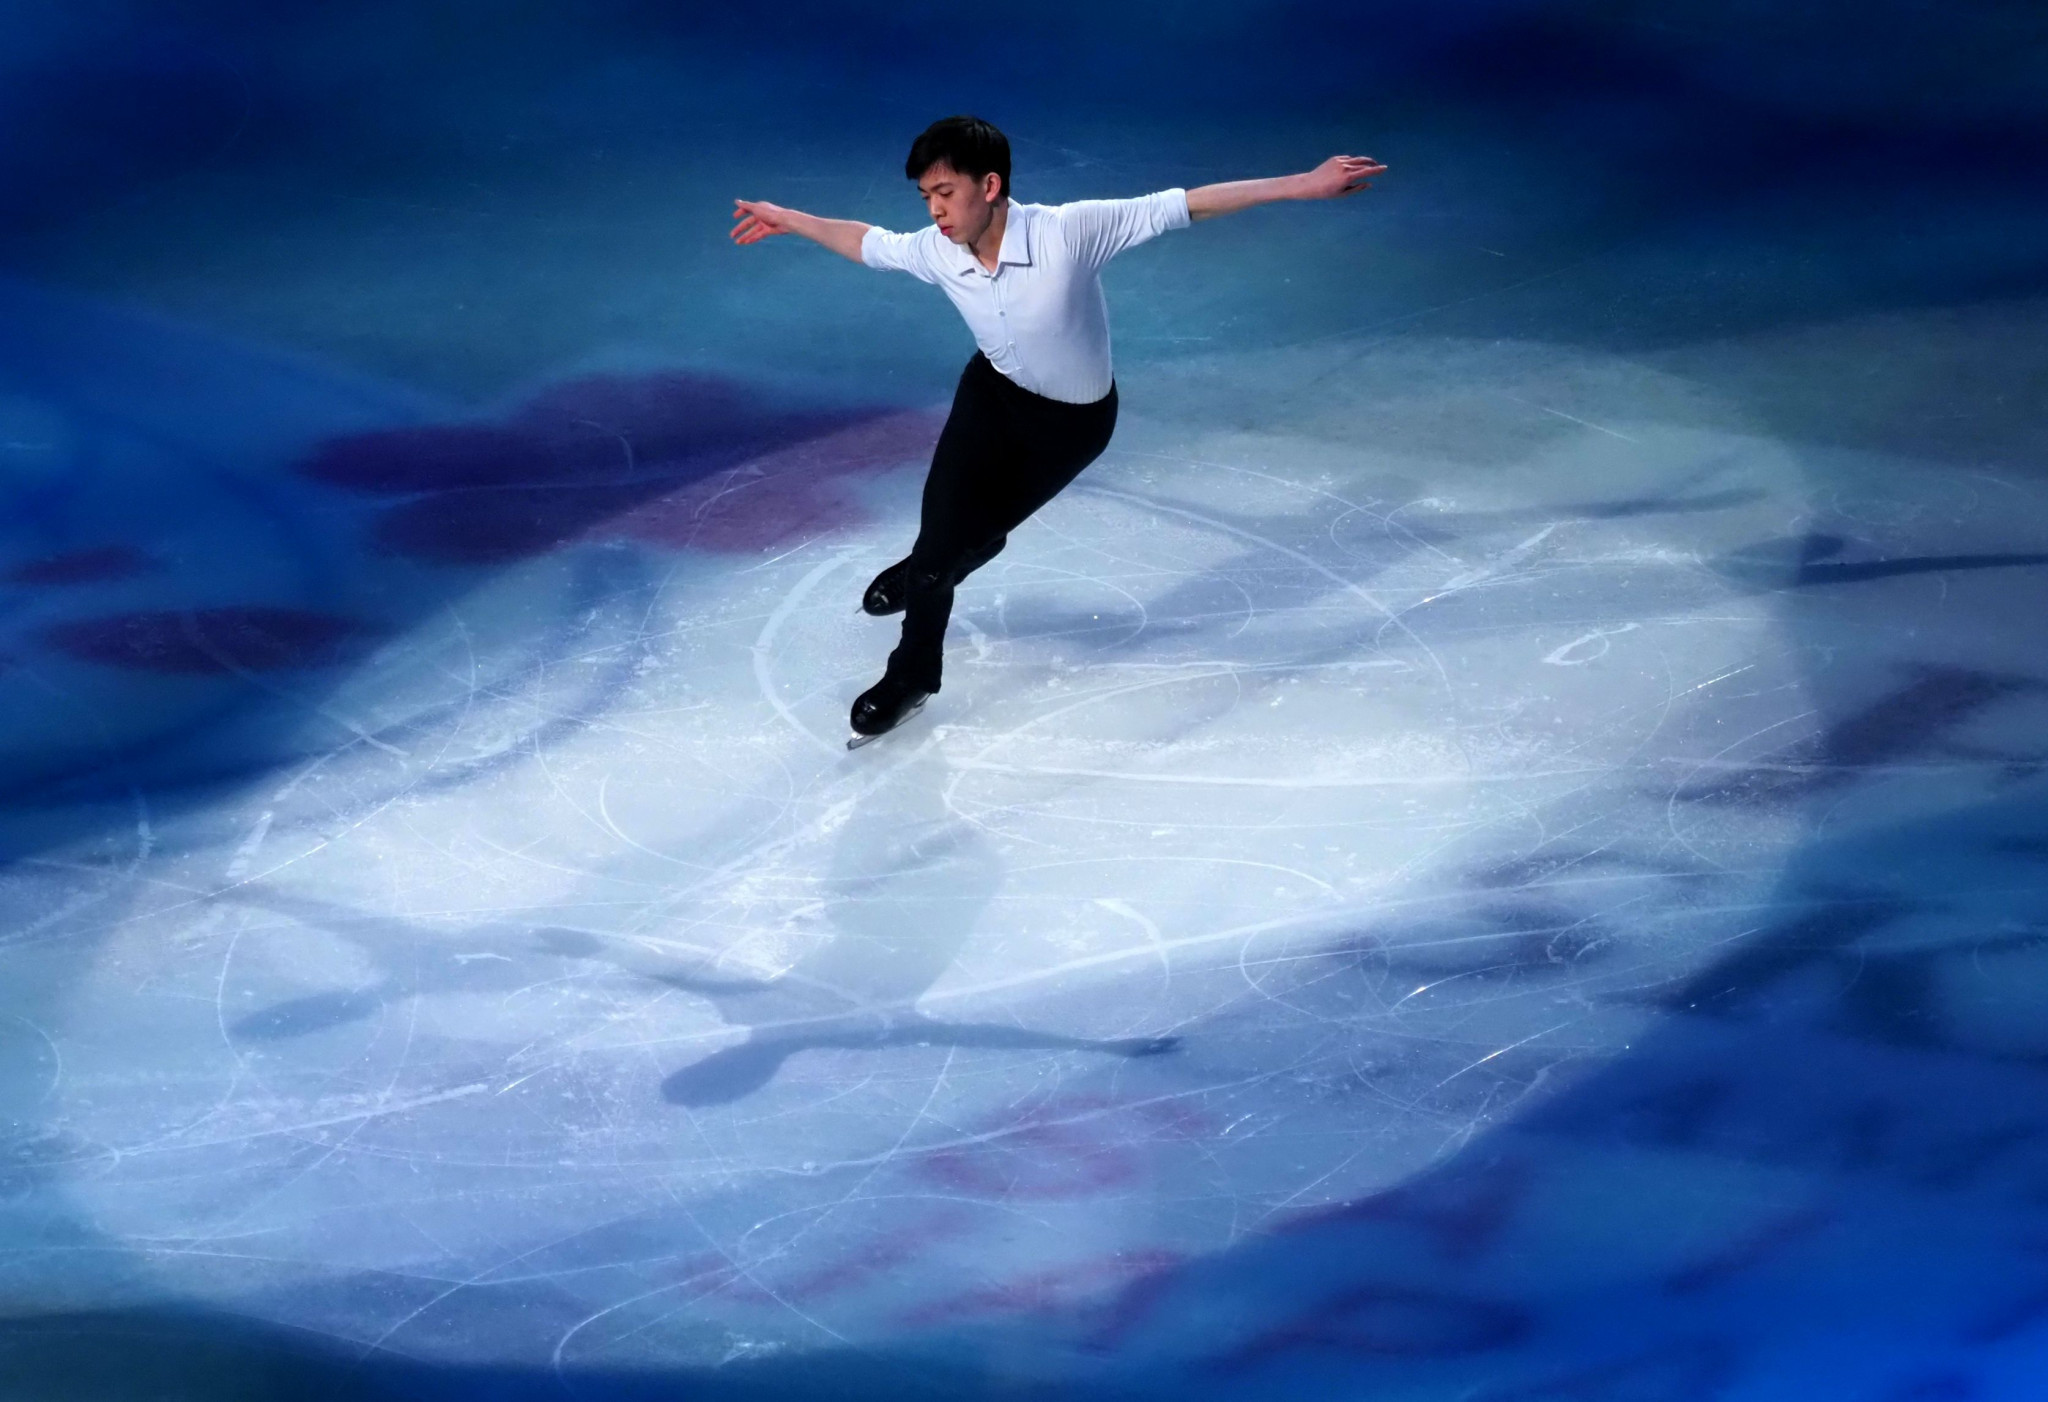 Saitama in Japan, last year's host, has been confirmed as the provisional venue for the 2023 World Figure Skating Championships ©Getty Images